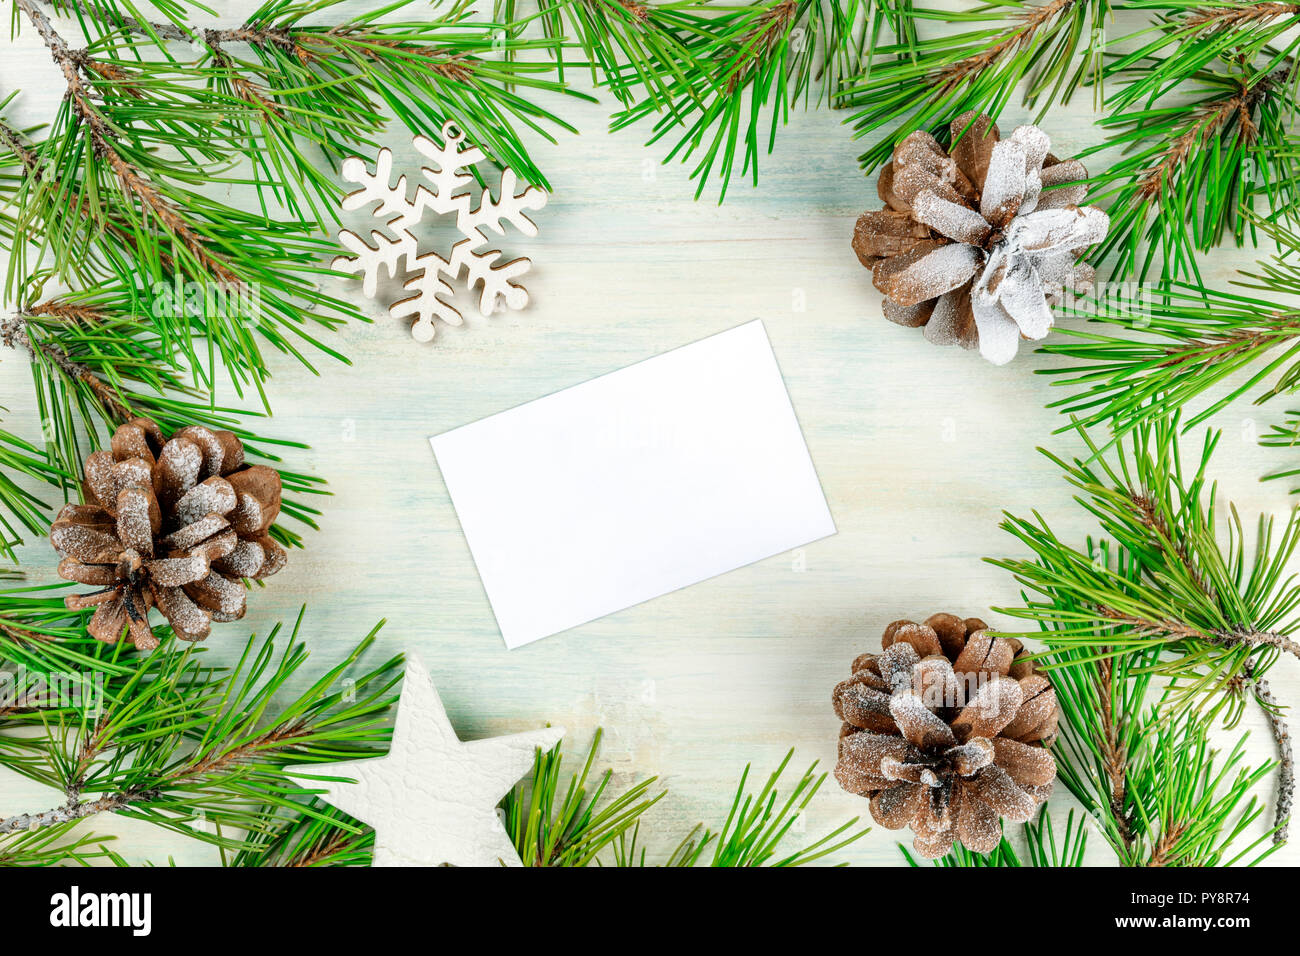 Christmas Business Decorations.Christmas Background With Fir Tree Branches Cones Snow